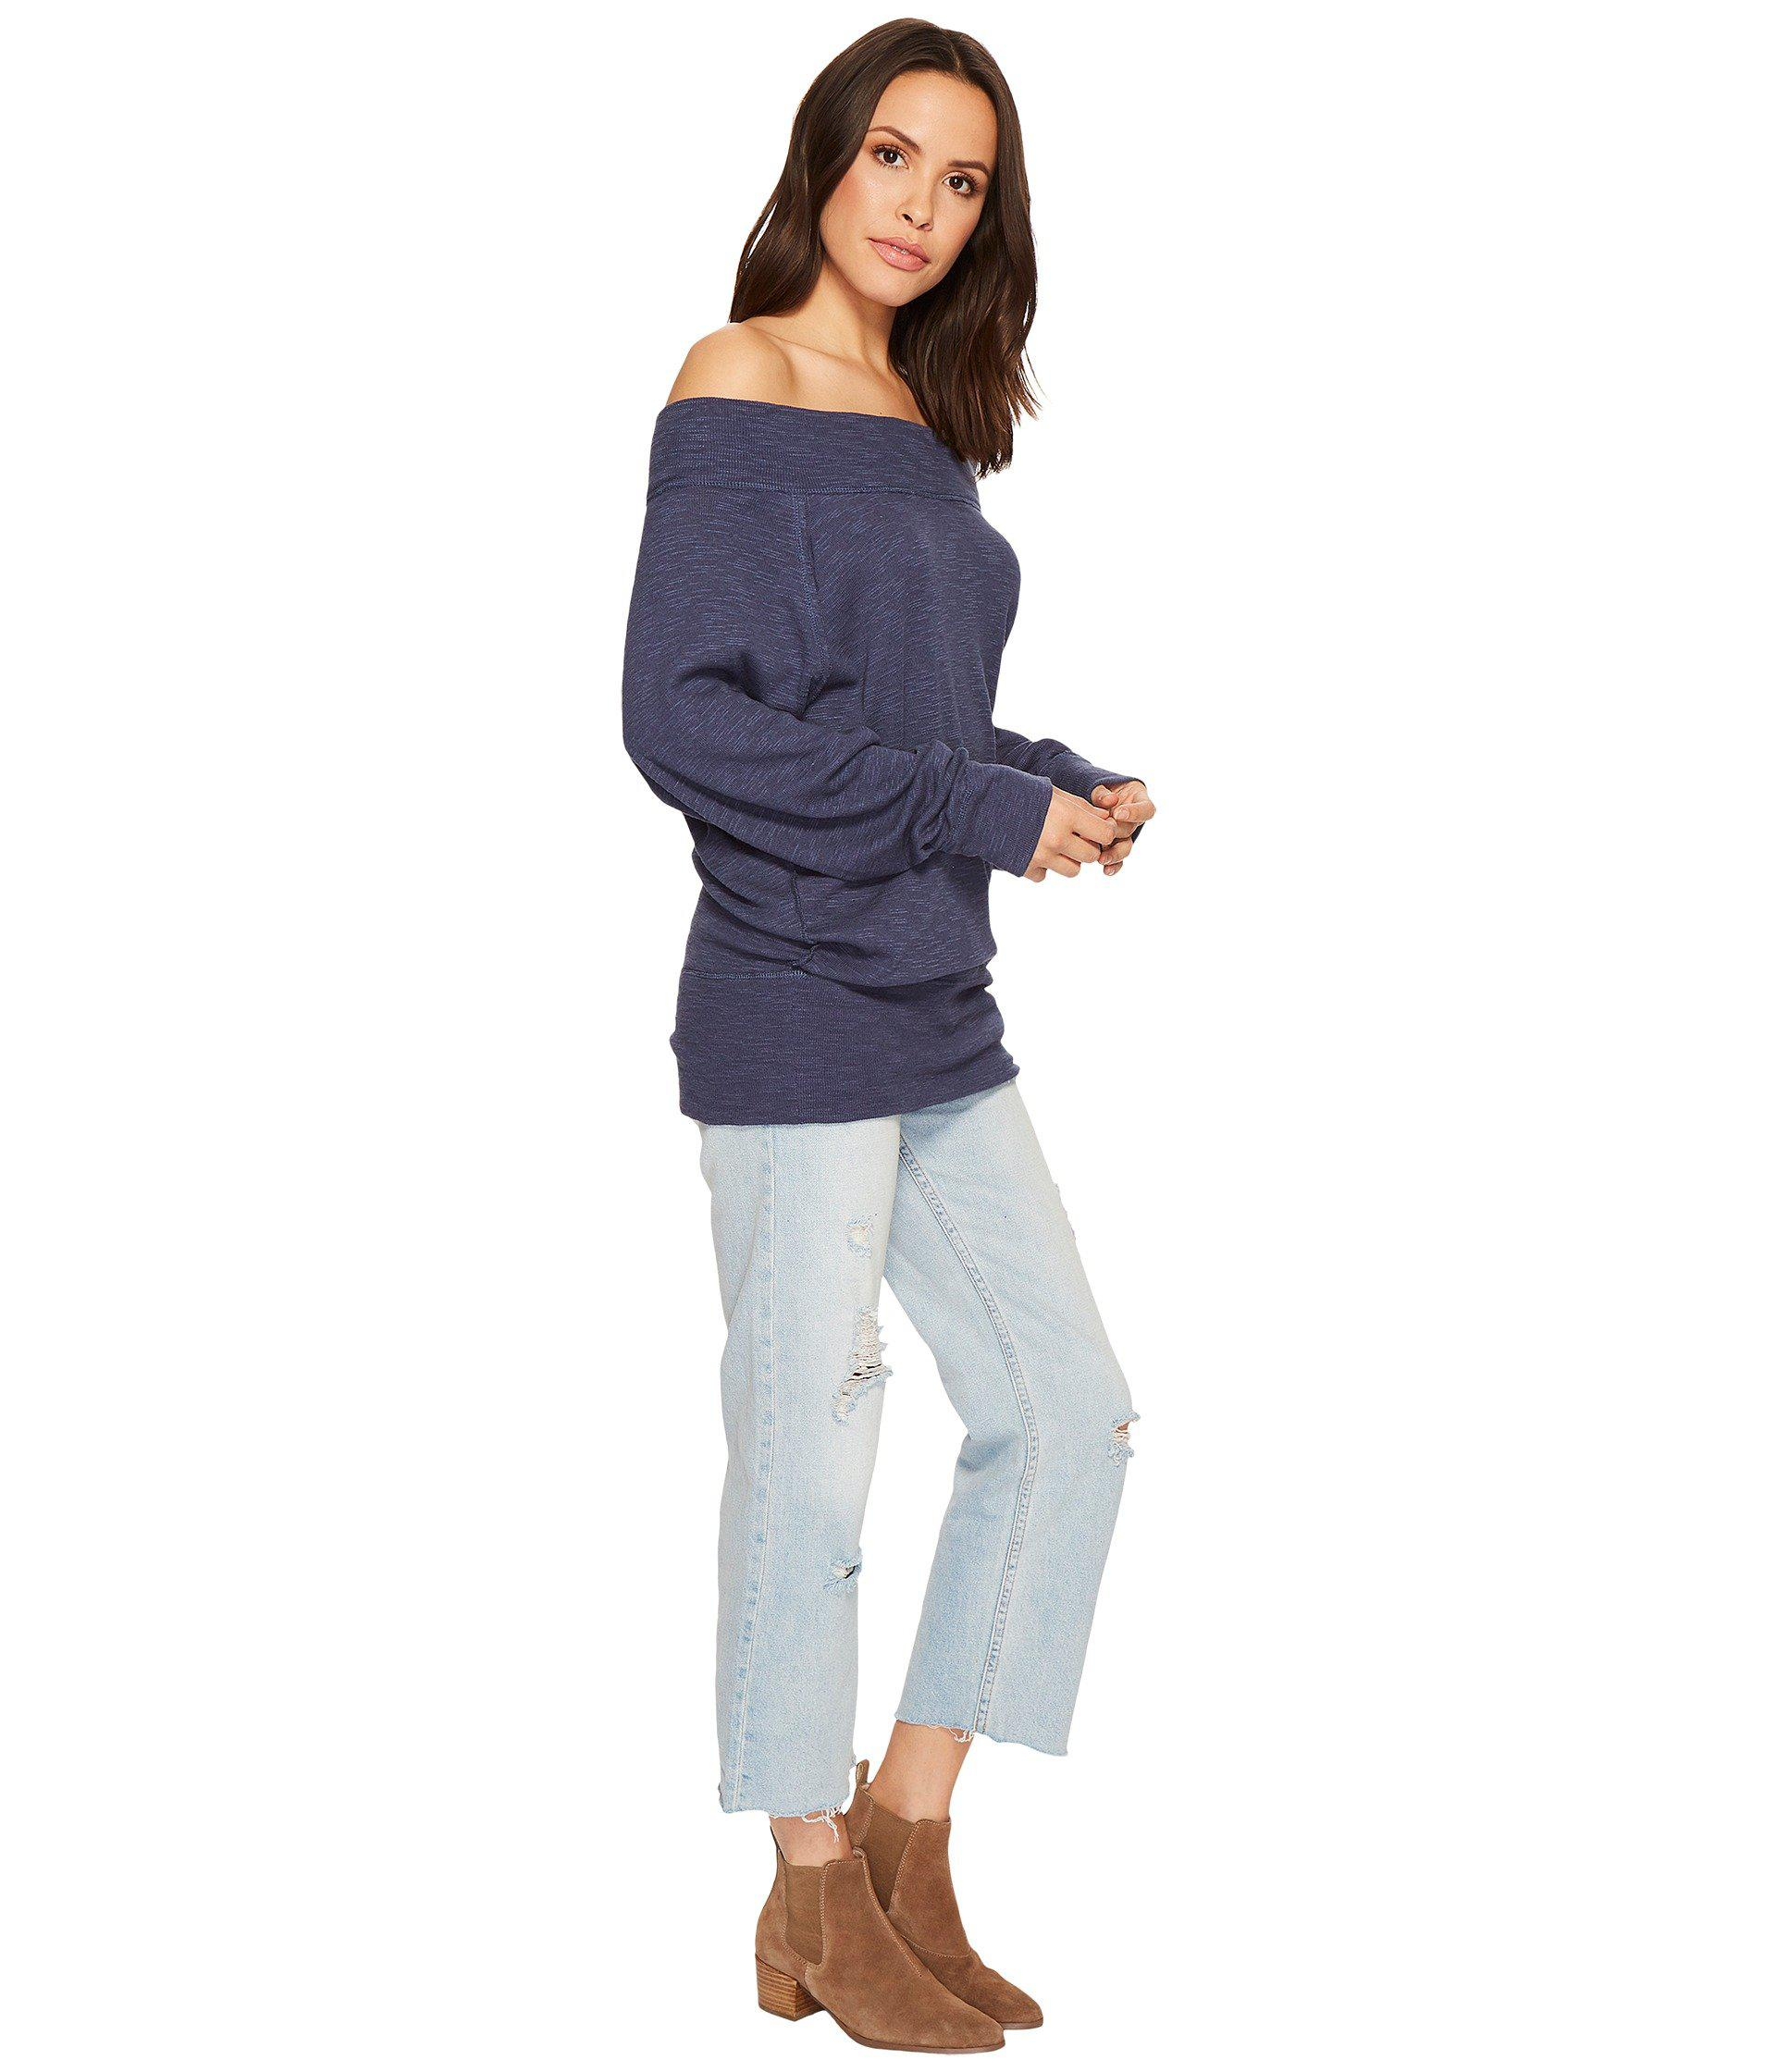 97050dcb18eb2 Lyst - Free People Palisades Thermal in Blue